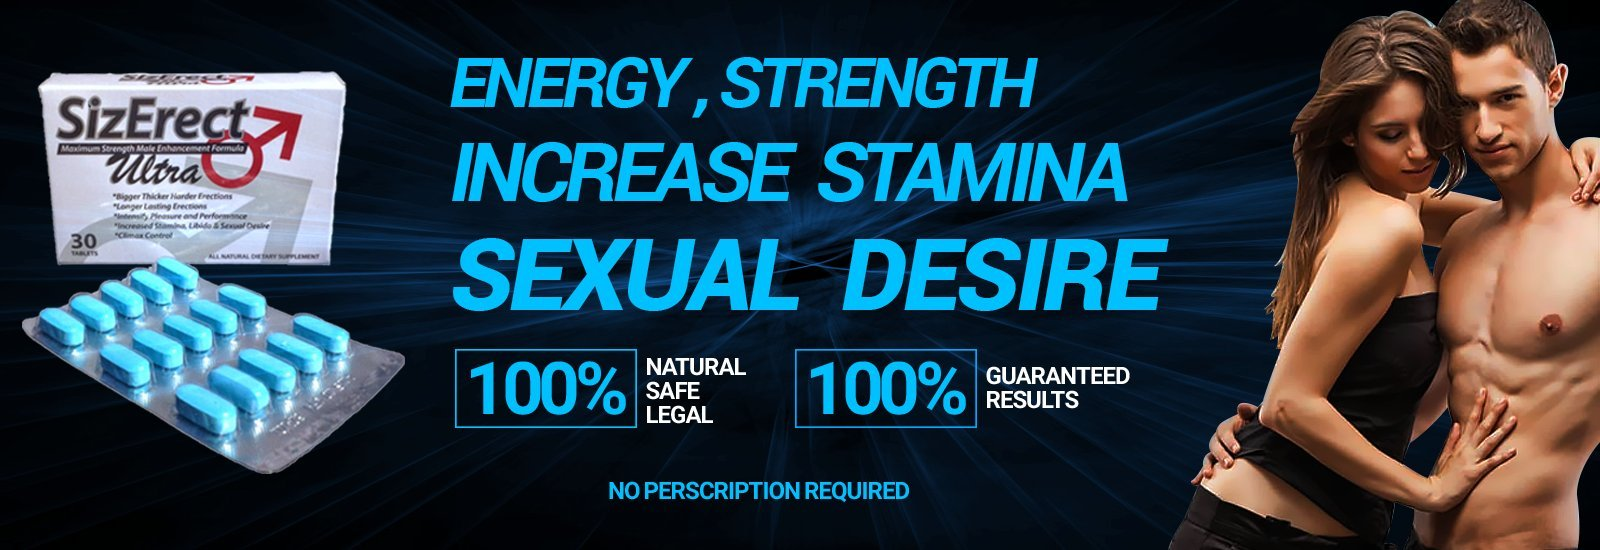 SizErect Ultra Advanced - #1 Male Sexual Enhancement Formula - Boost Male Performance and Libdo - Long Lasting Effect | Limited Supply (2)